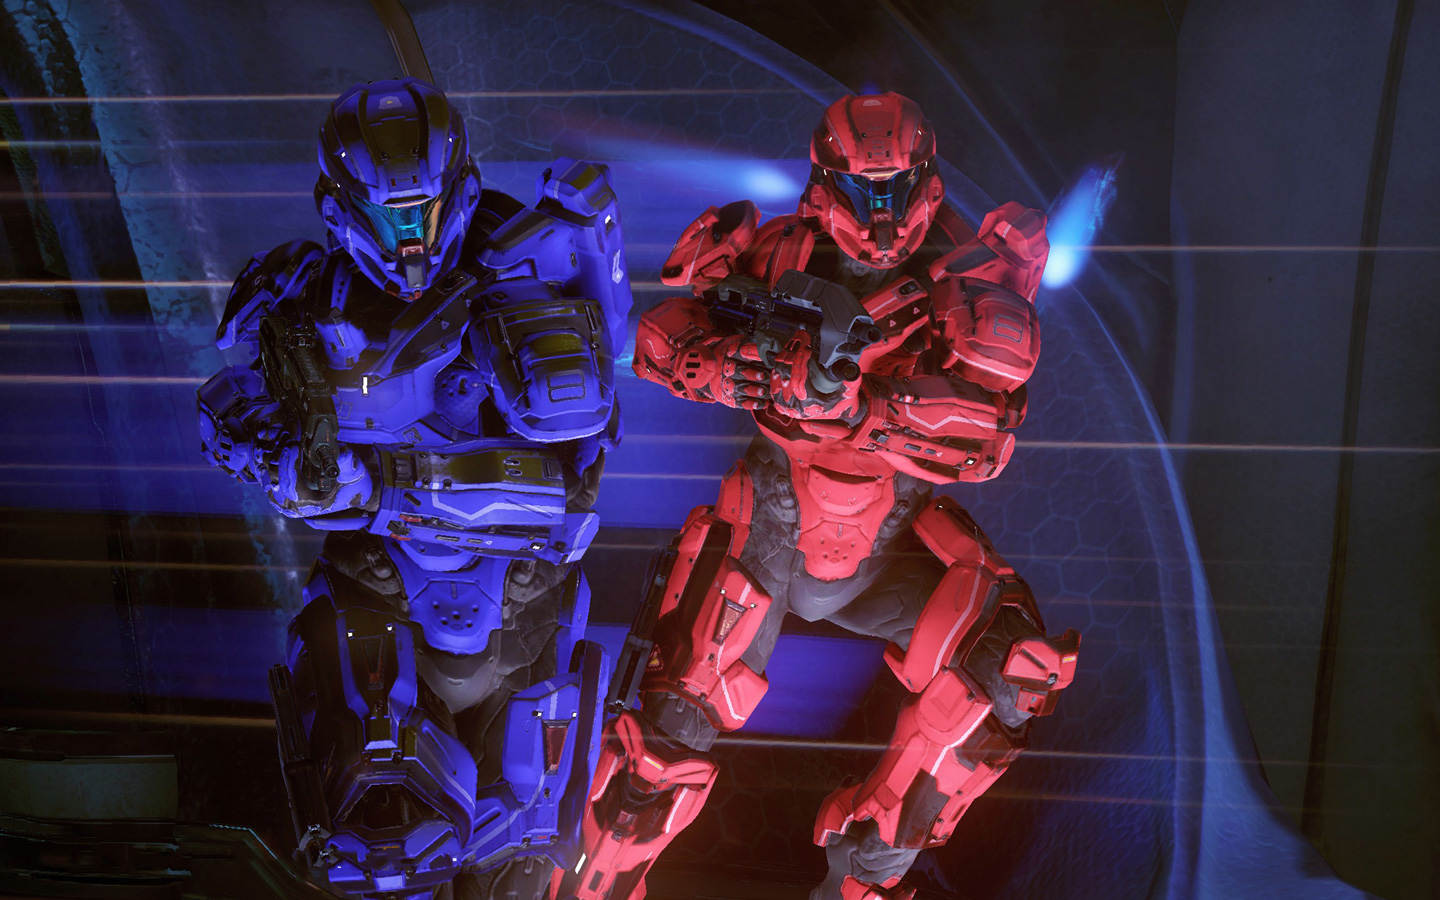 Halo 5: Guardians Wallpaper in 1440x900